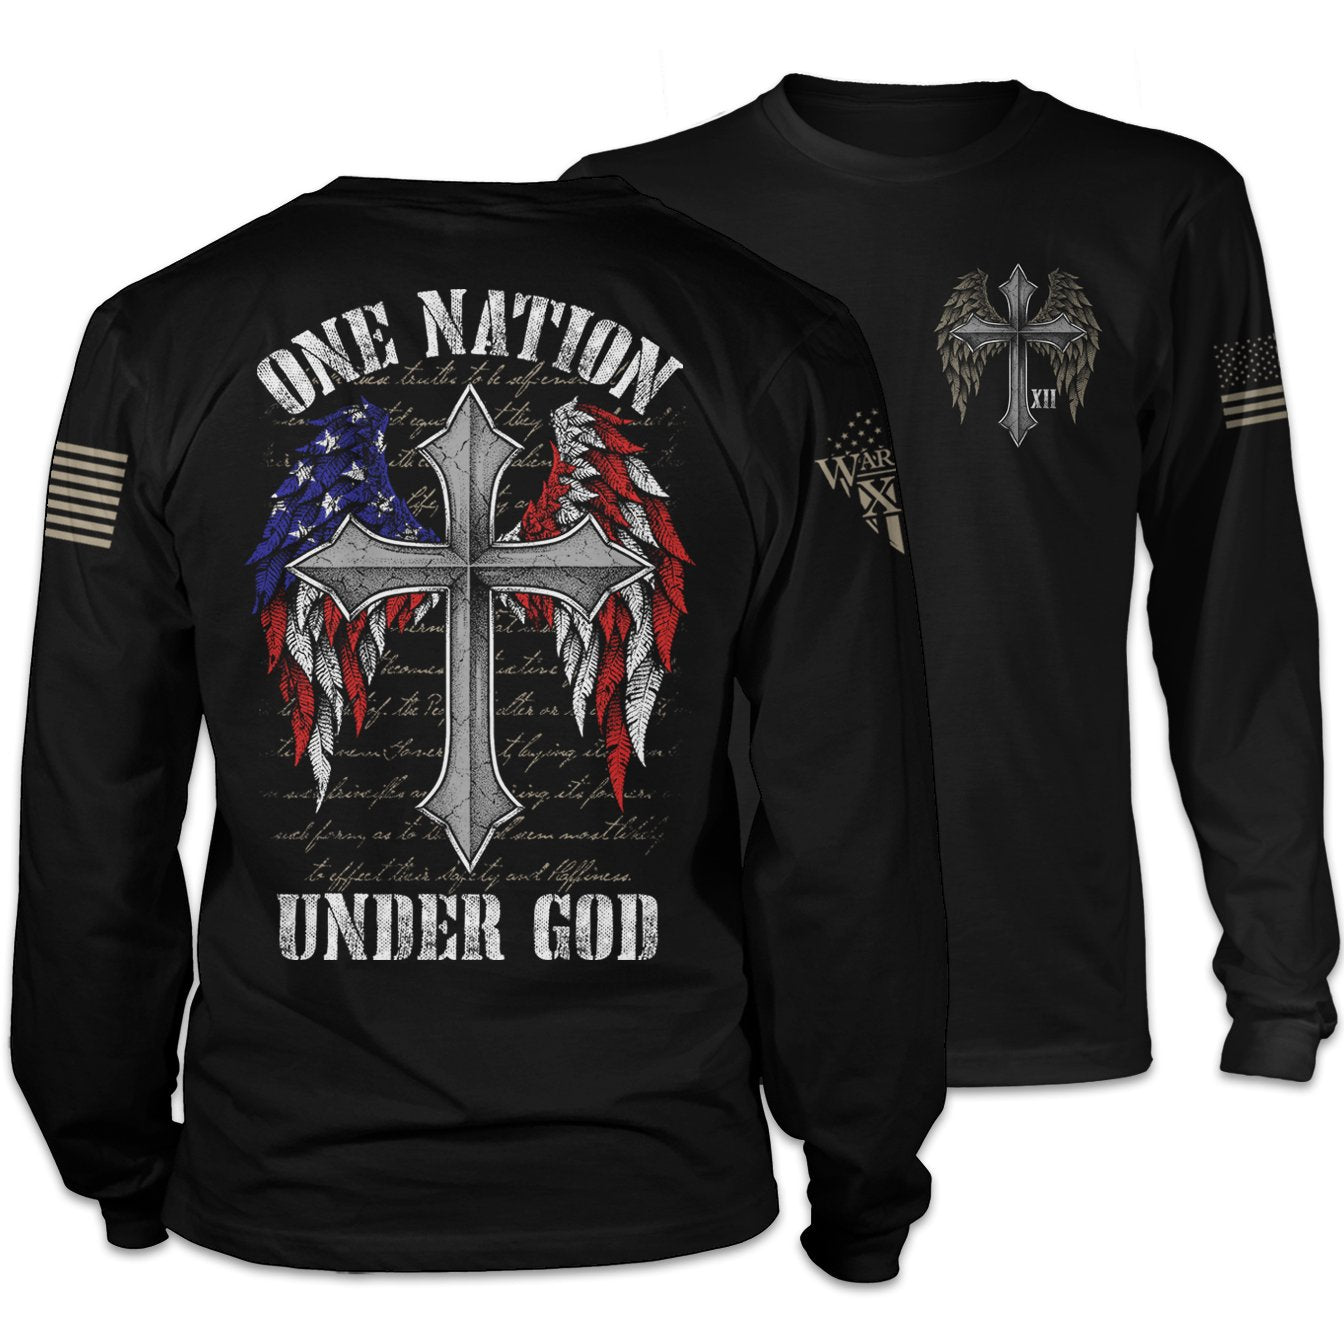 One Nation Under God Long Sleeve